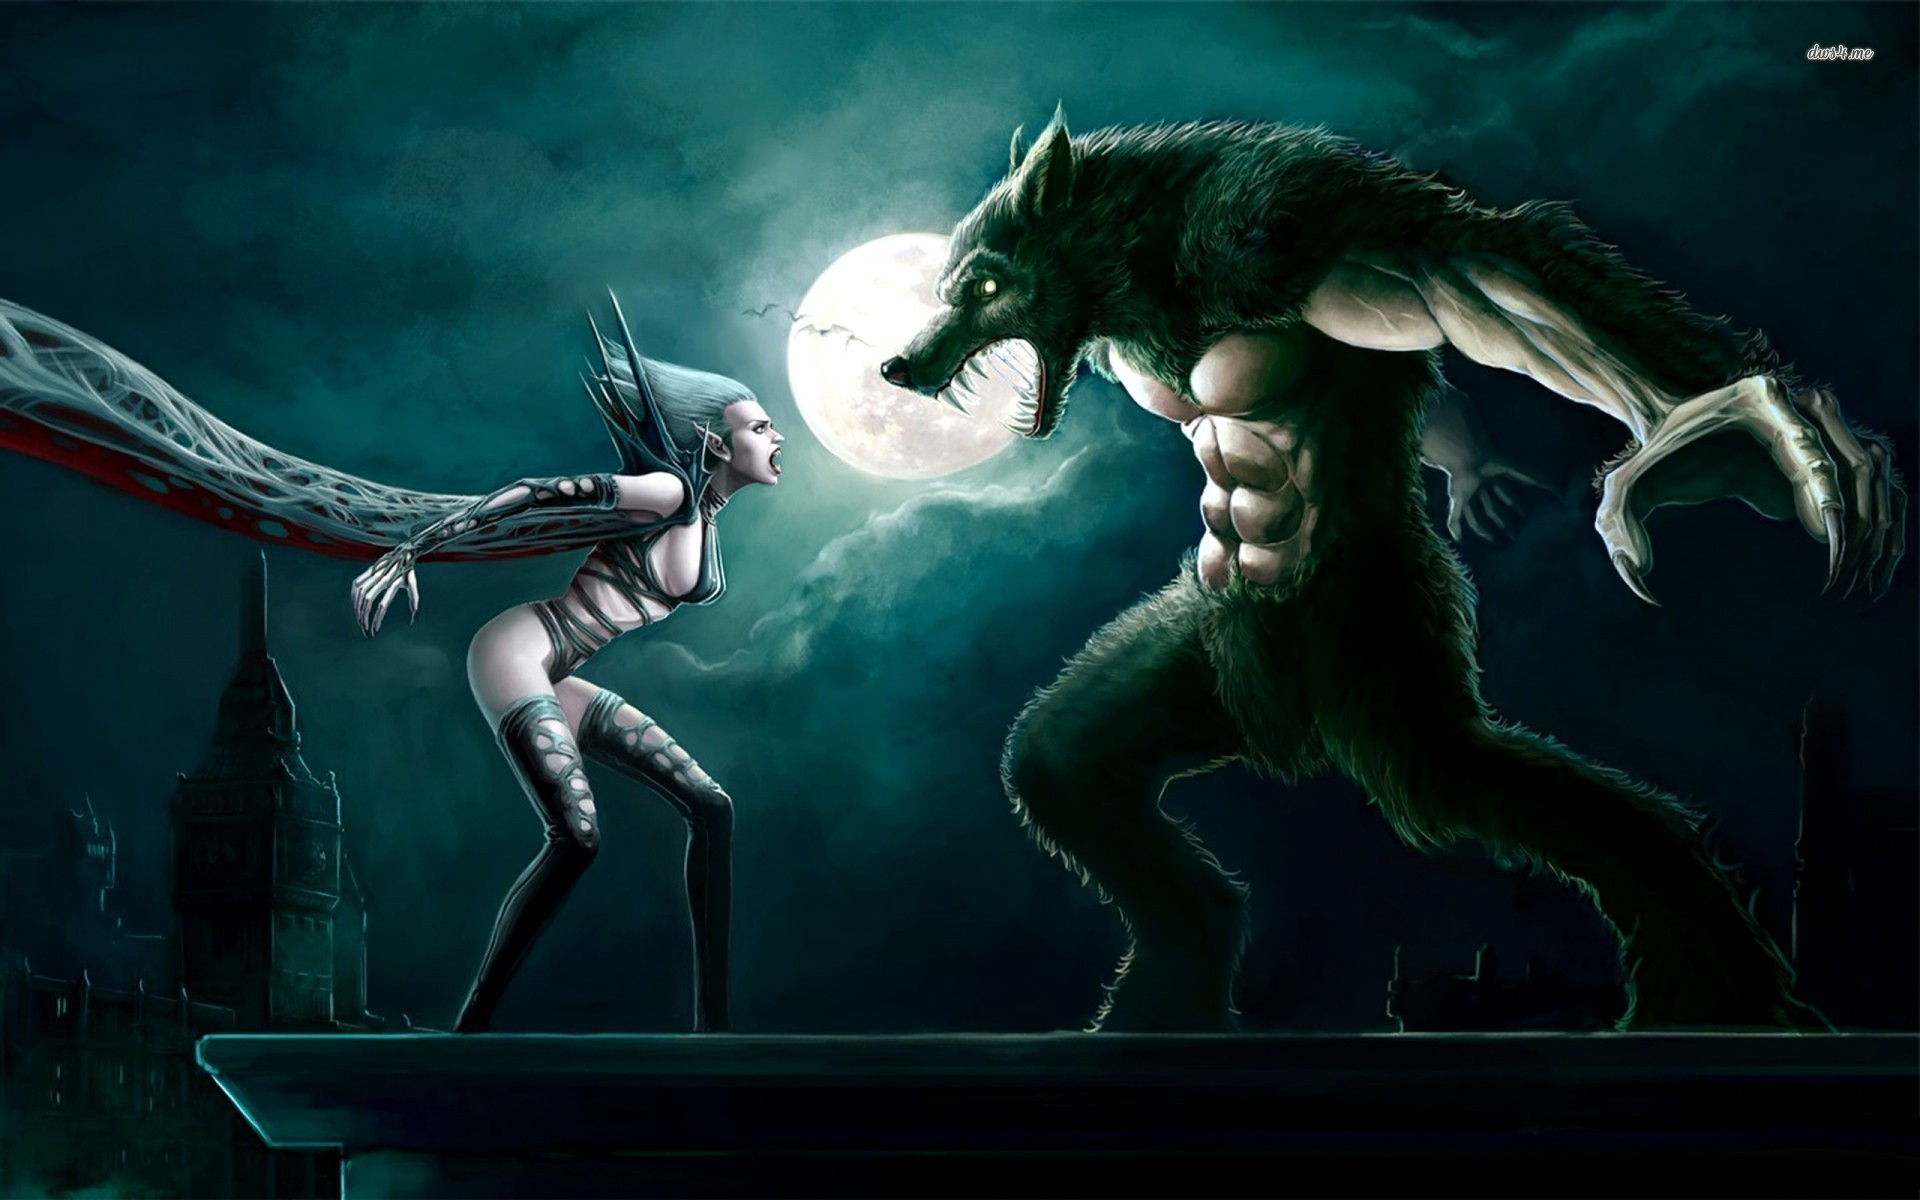 1920x1200 Vampire vs werewolf wallpaper - 976208